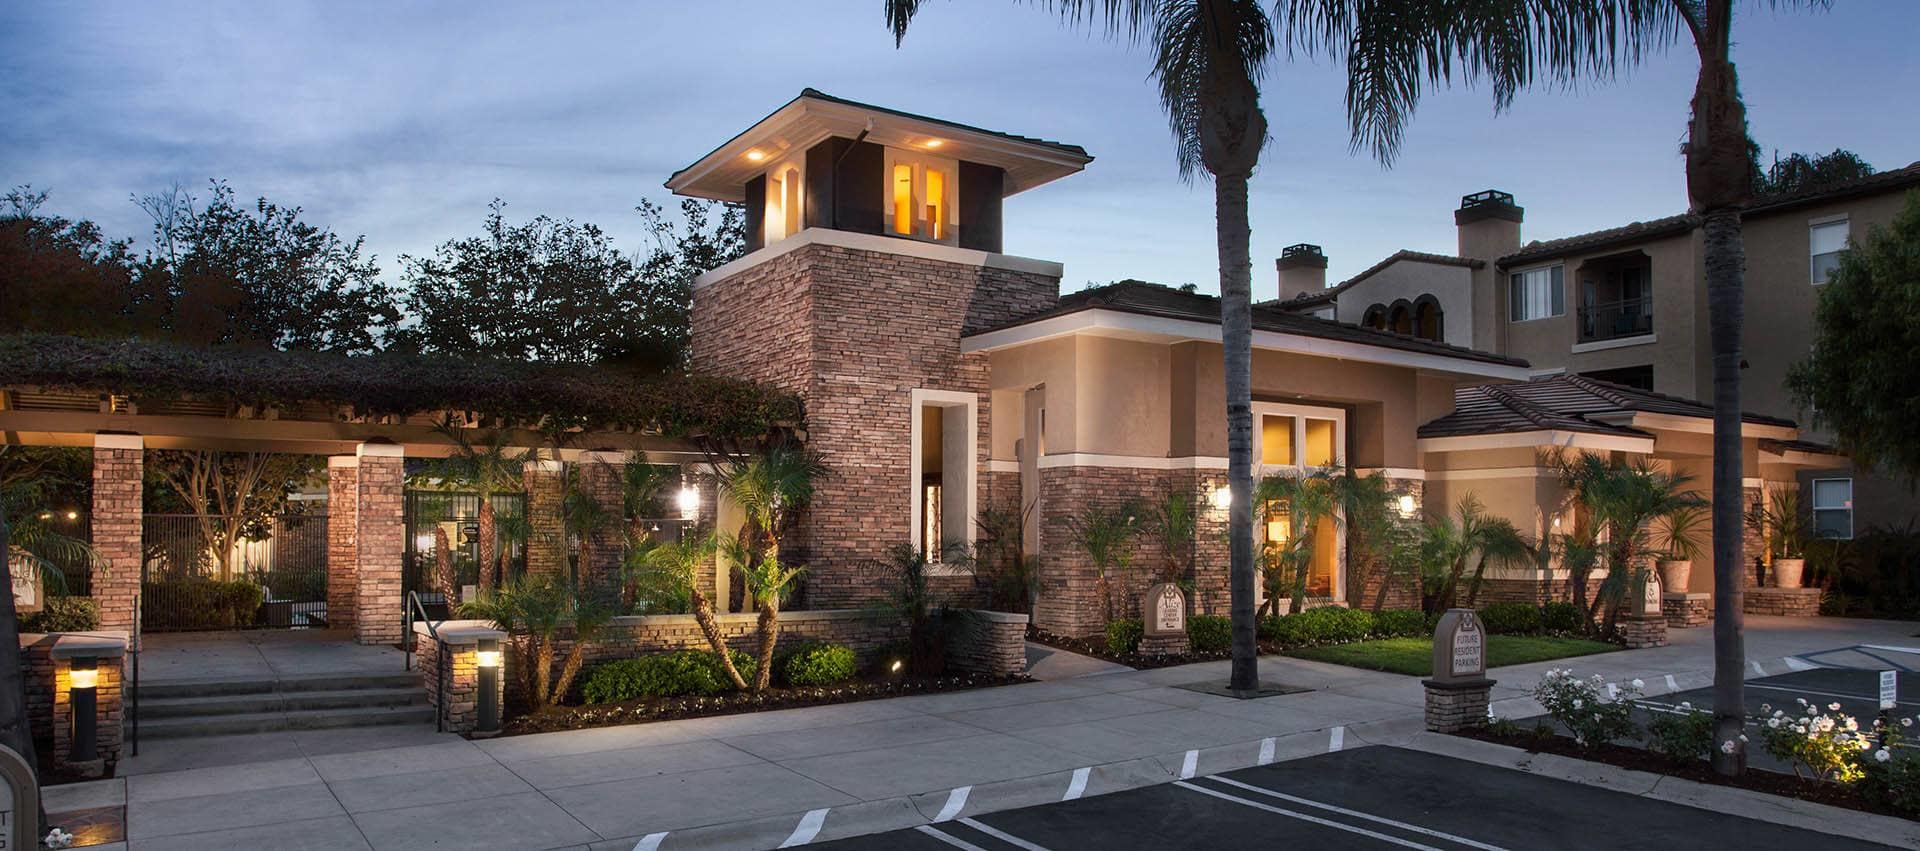 Exterior At Night in Alize at Aliso Viejo Apartment Homes in Aliso Viejo, California